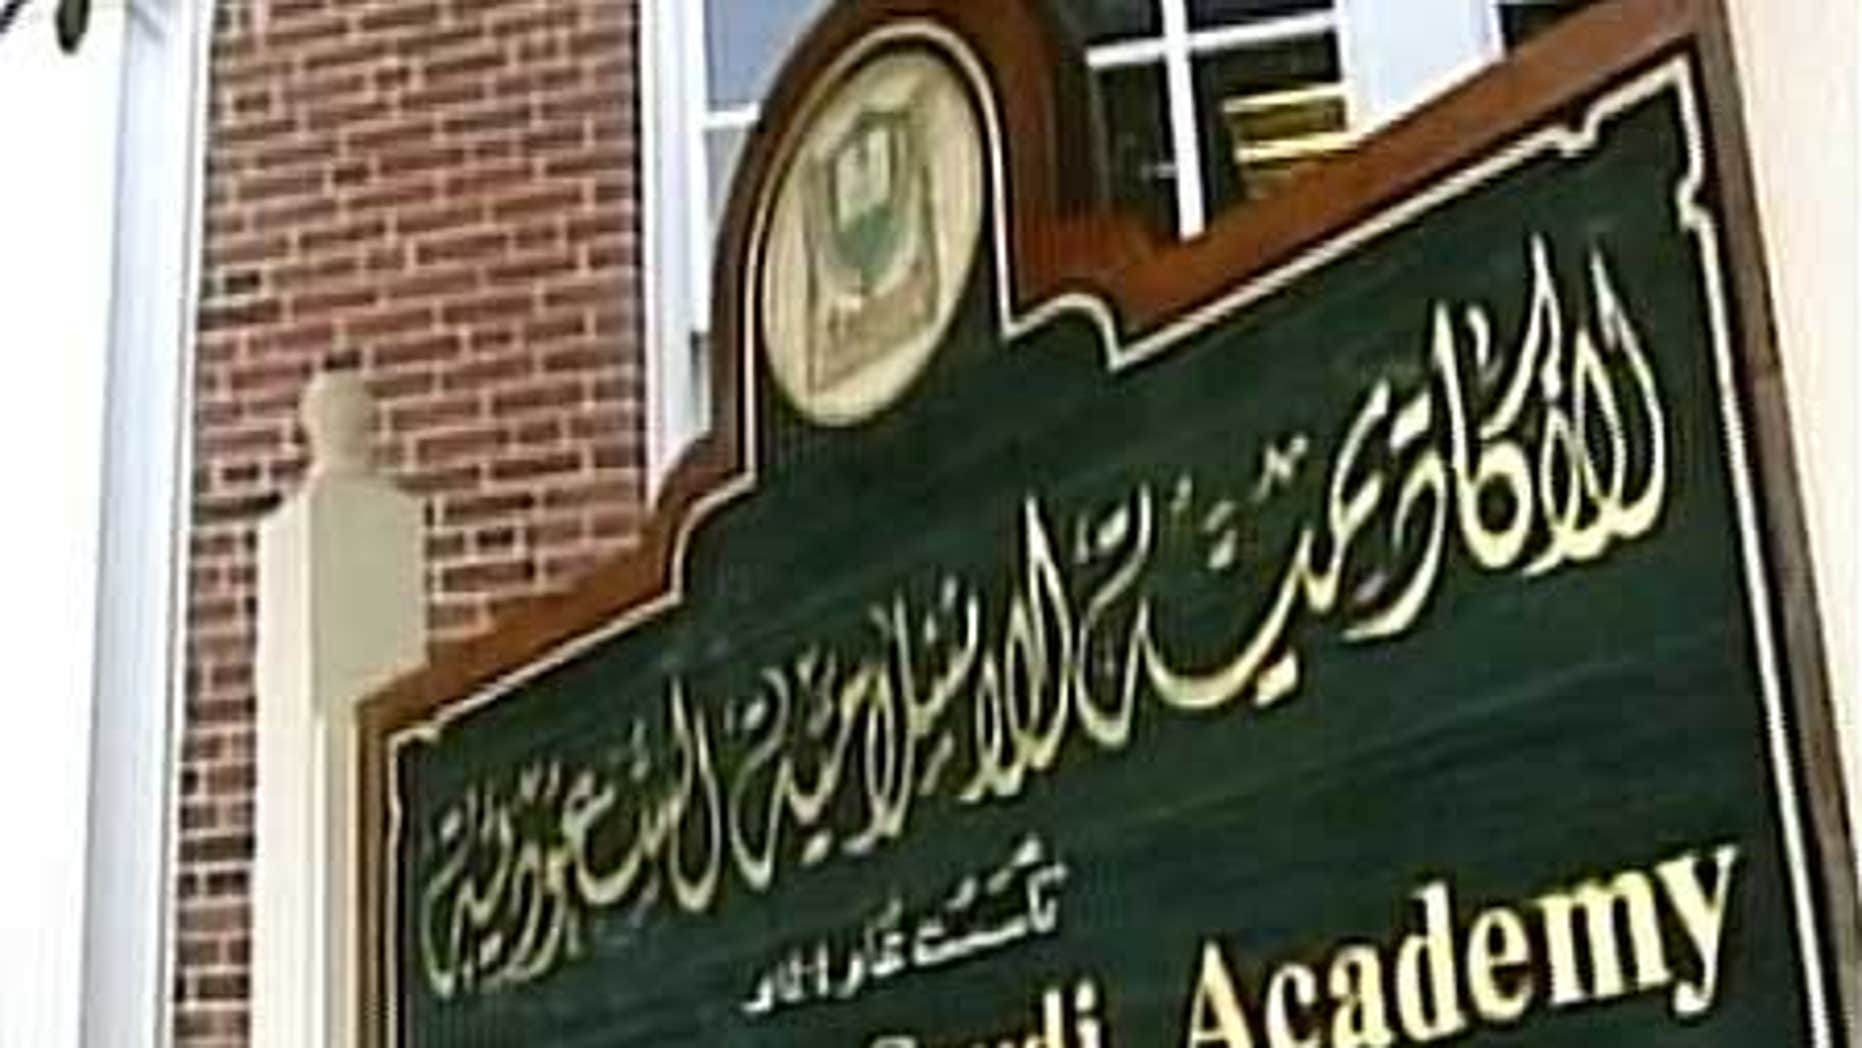 The controversial Islamic Saudi Academy is now allowed to expand its campus.